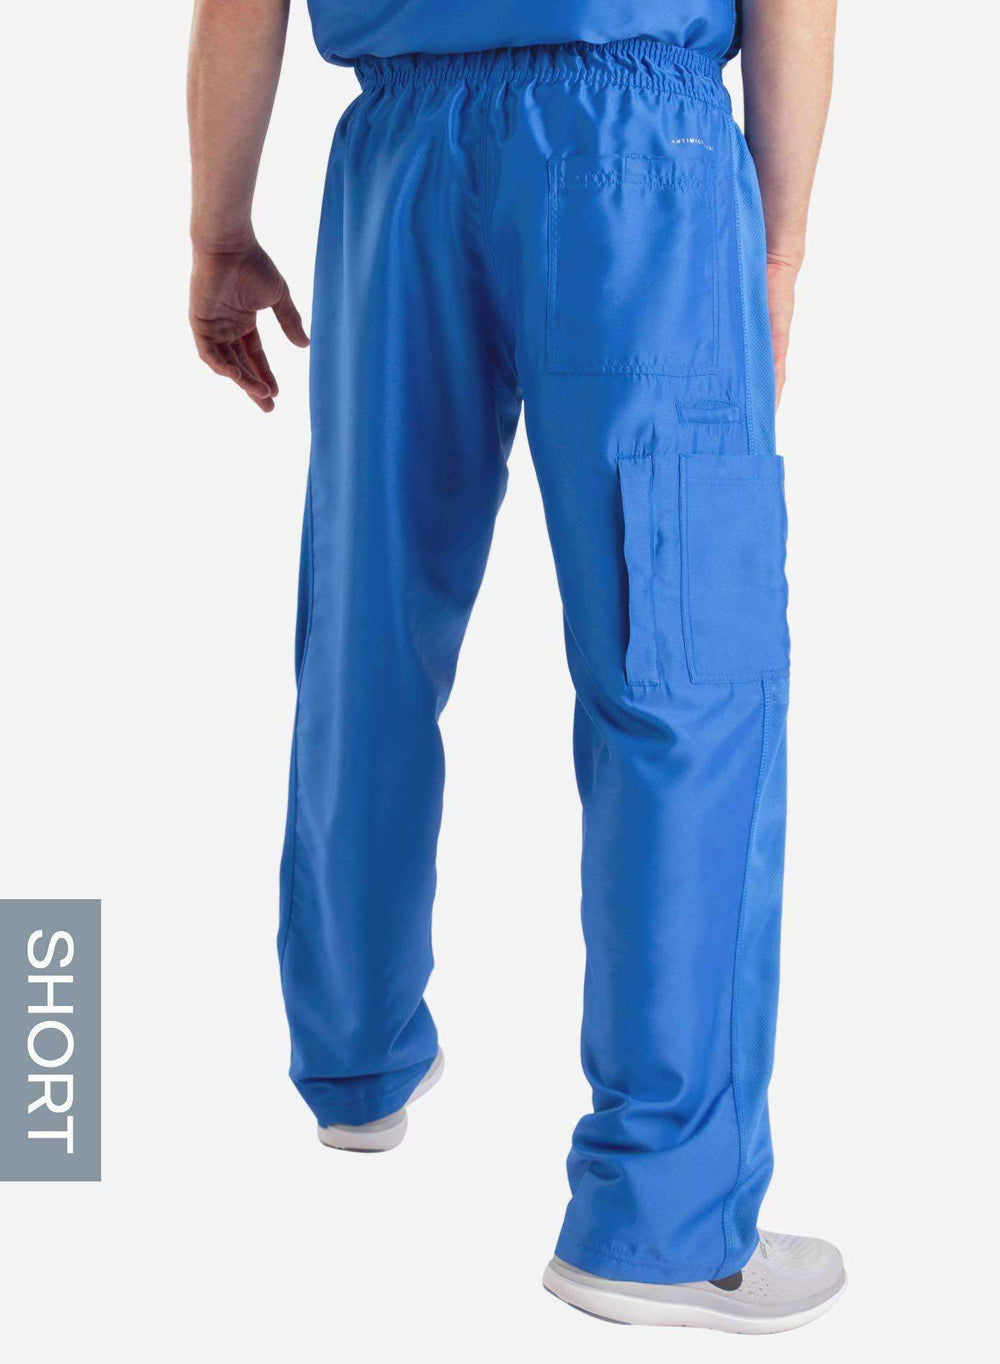 Men's Relaxed Fit Scrub Pants | Short